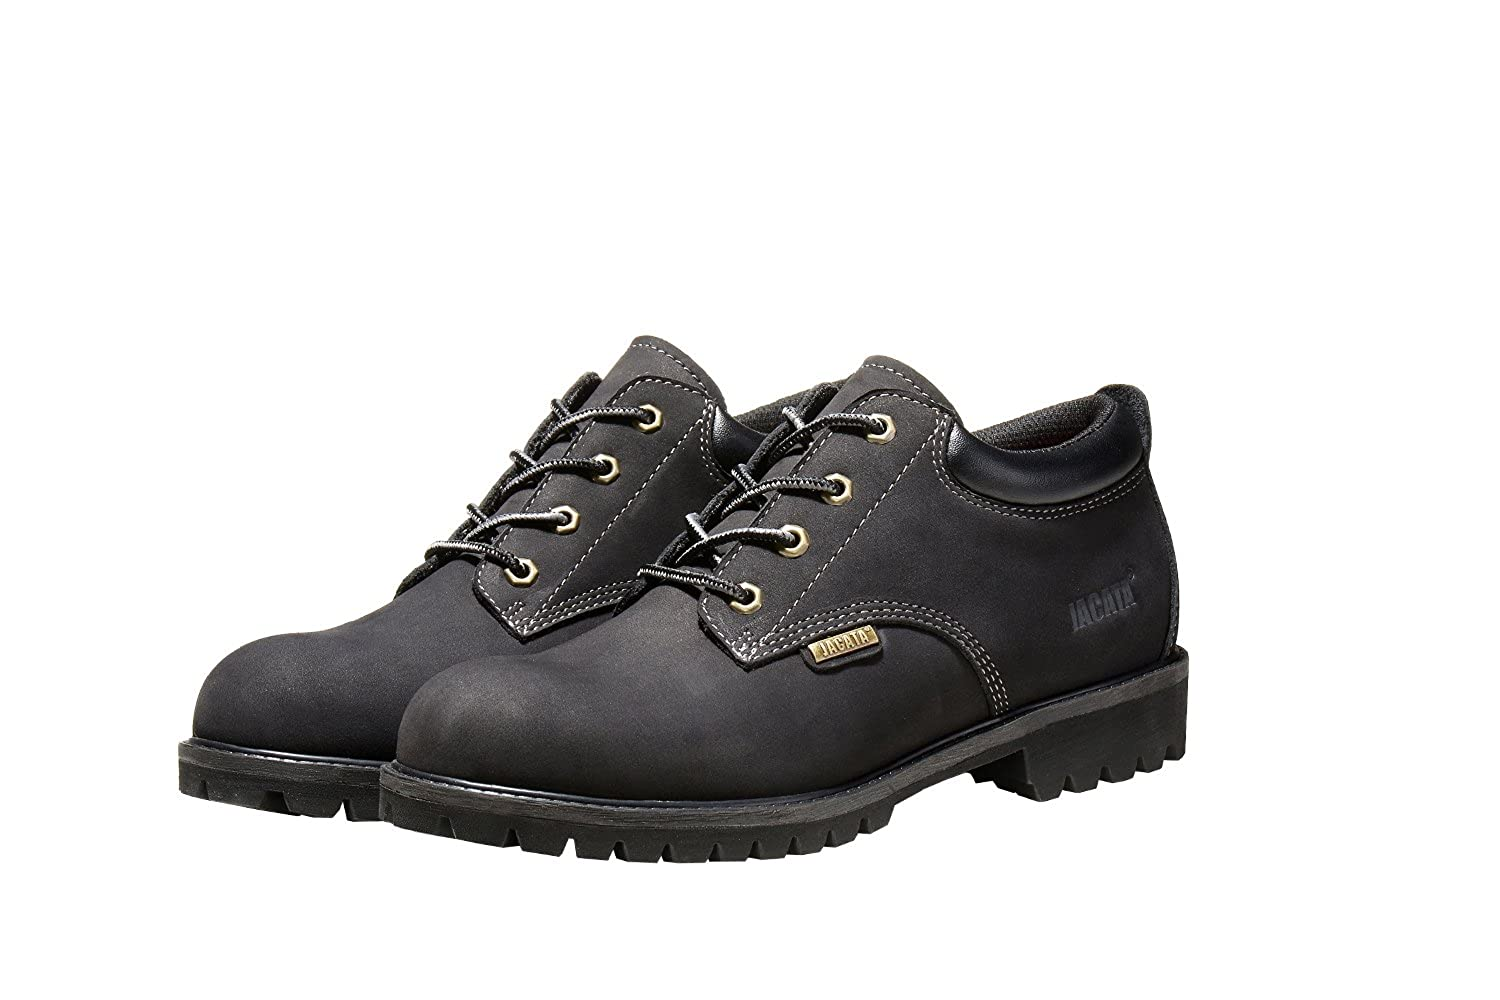 Jacata Mens Low-Cut Work Boots Water Resistant Boots Heavy Duty Natural Rubber Blend Soles